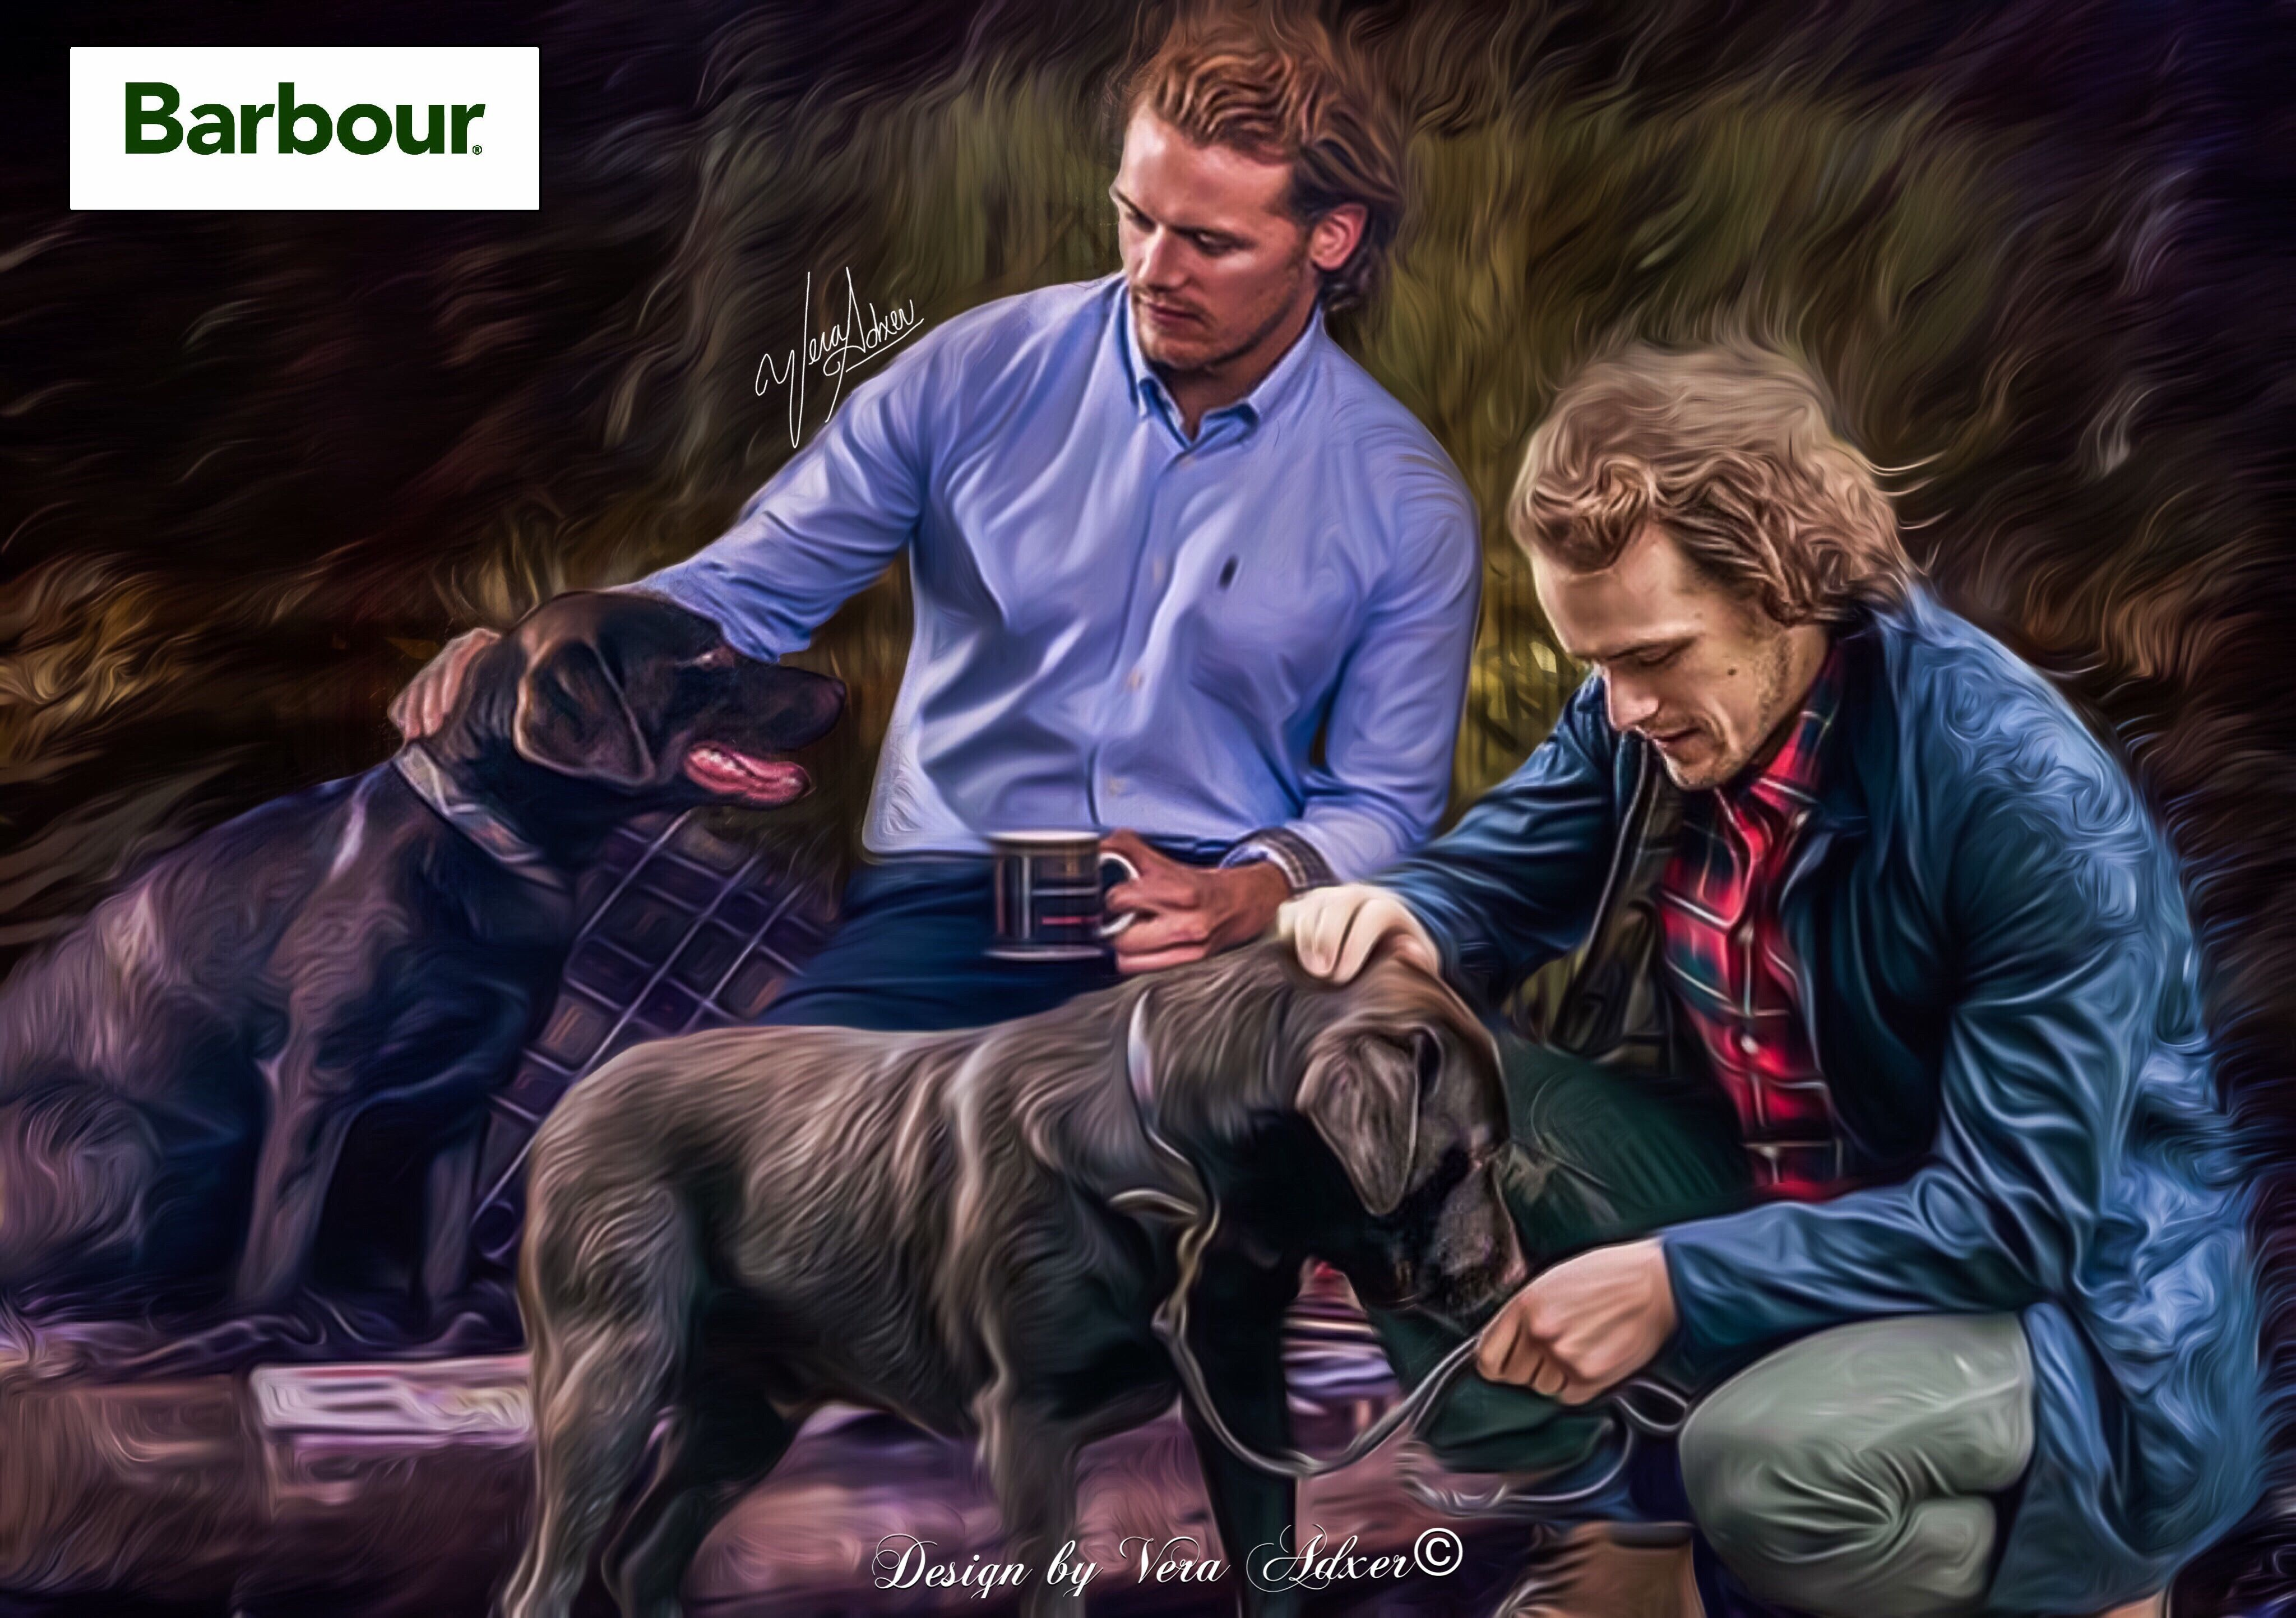 Fan art by ©Vera Adxer of Sam Heughan